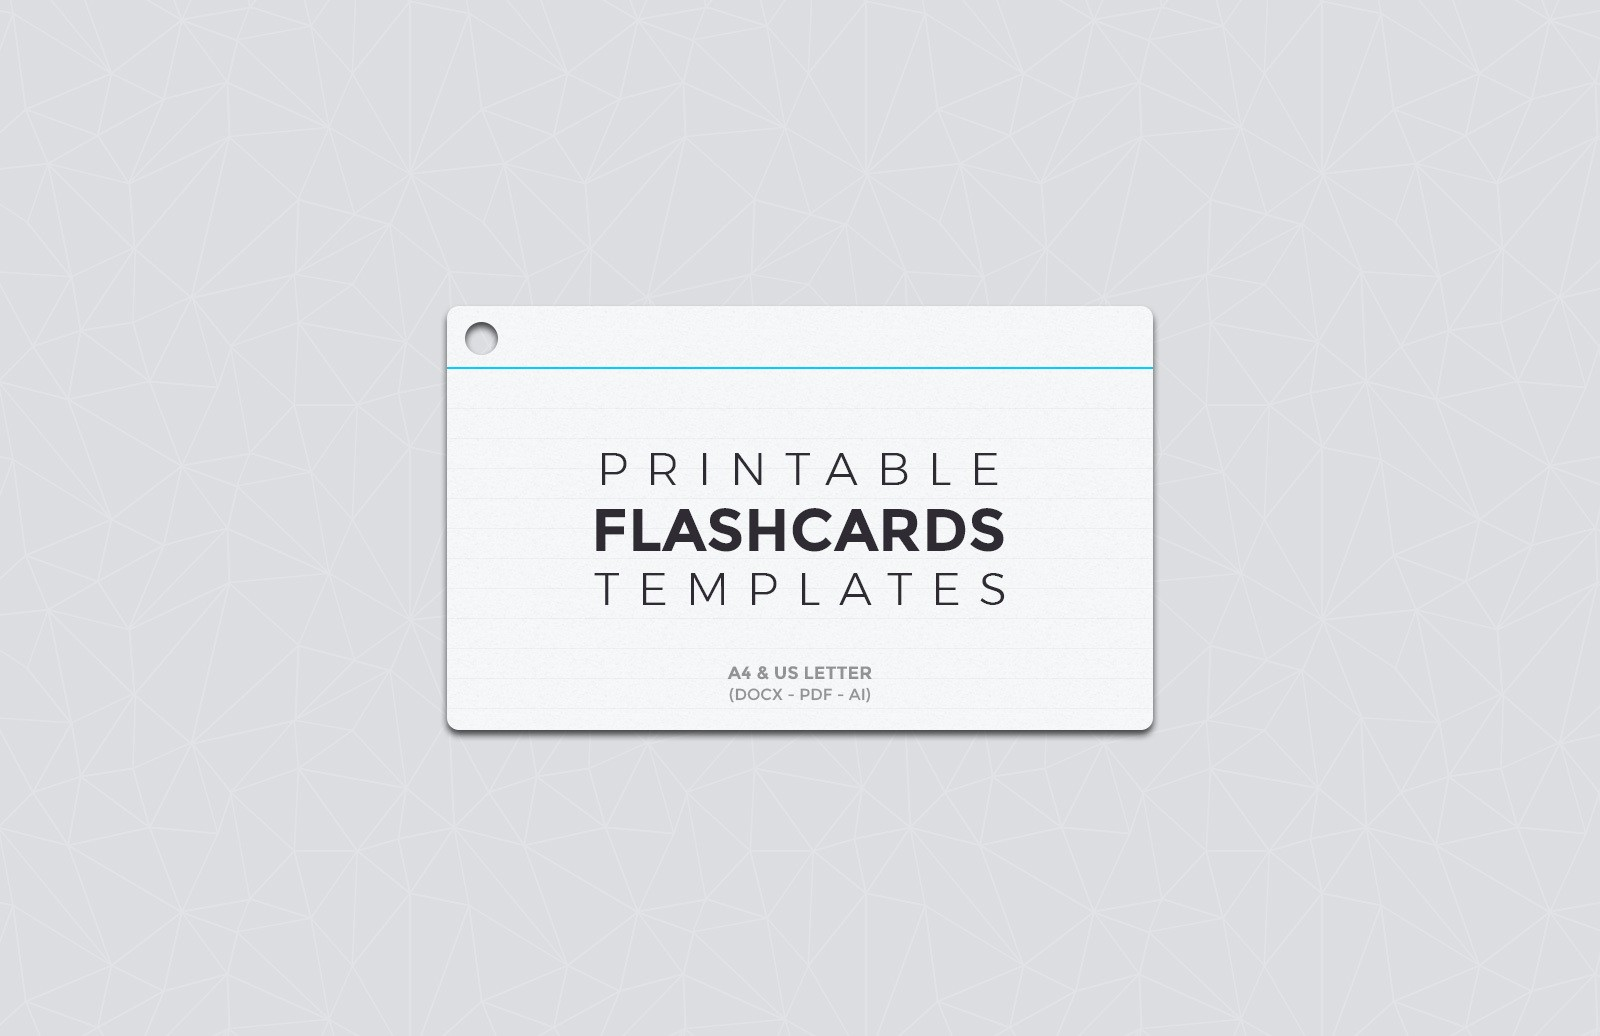 Free Printable Flashcard Templates Medialoot - Flashcard template free